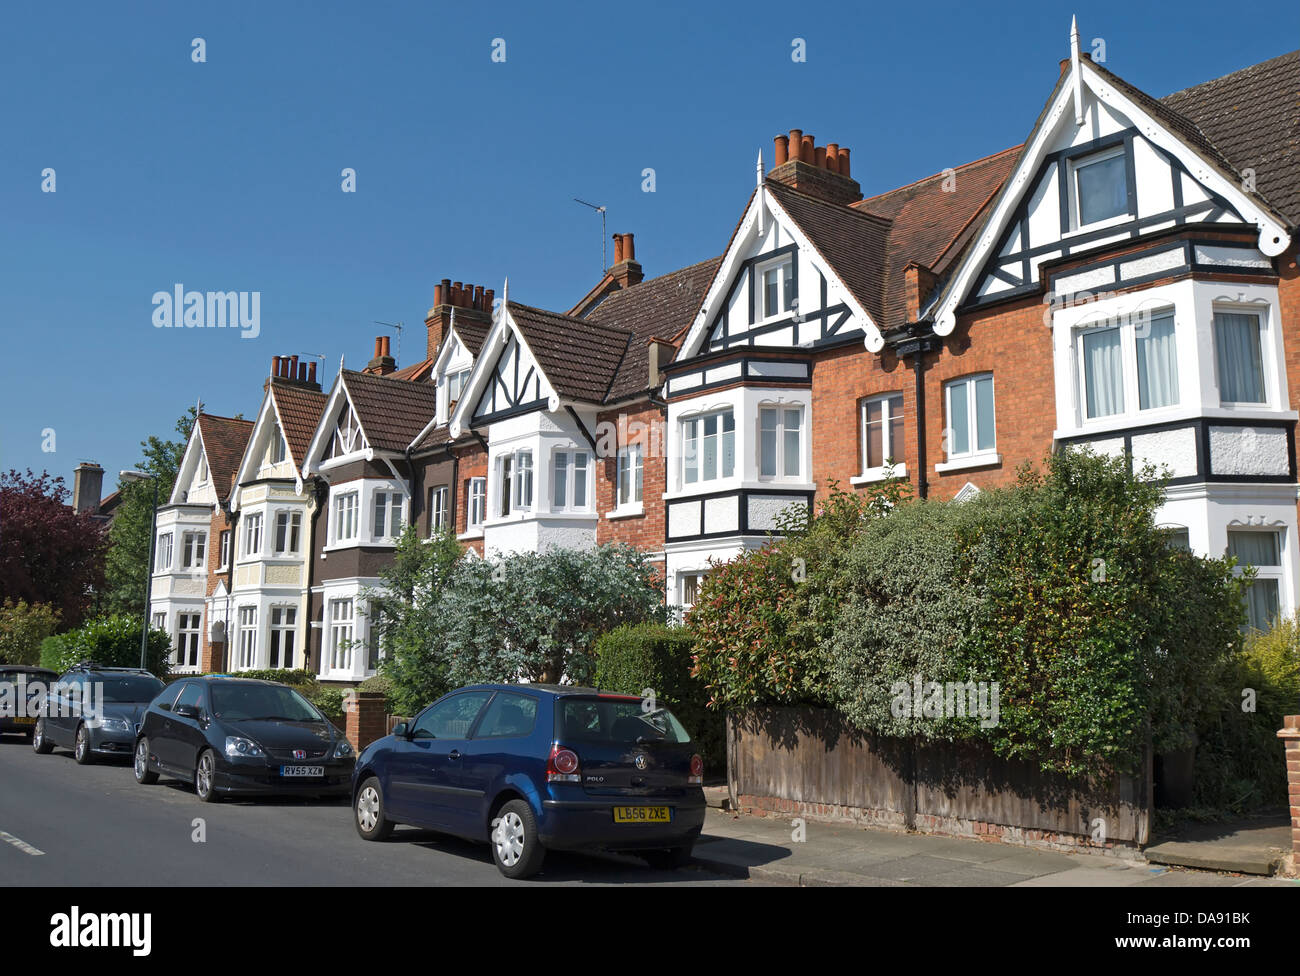 terrace of victorian houses with bay windows in teddington, middlesex, england - Stock Image